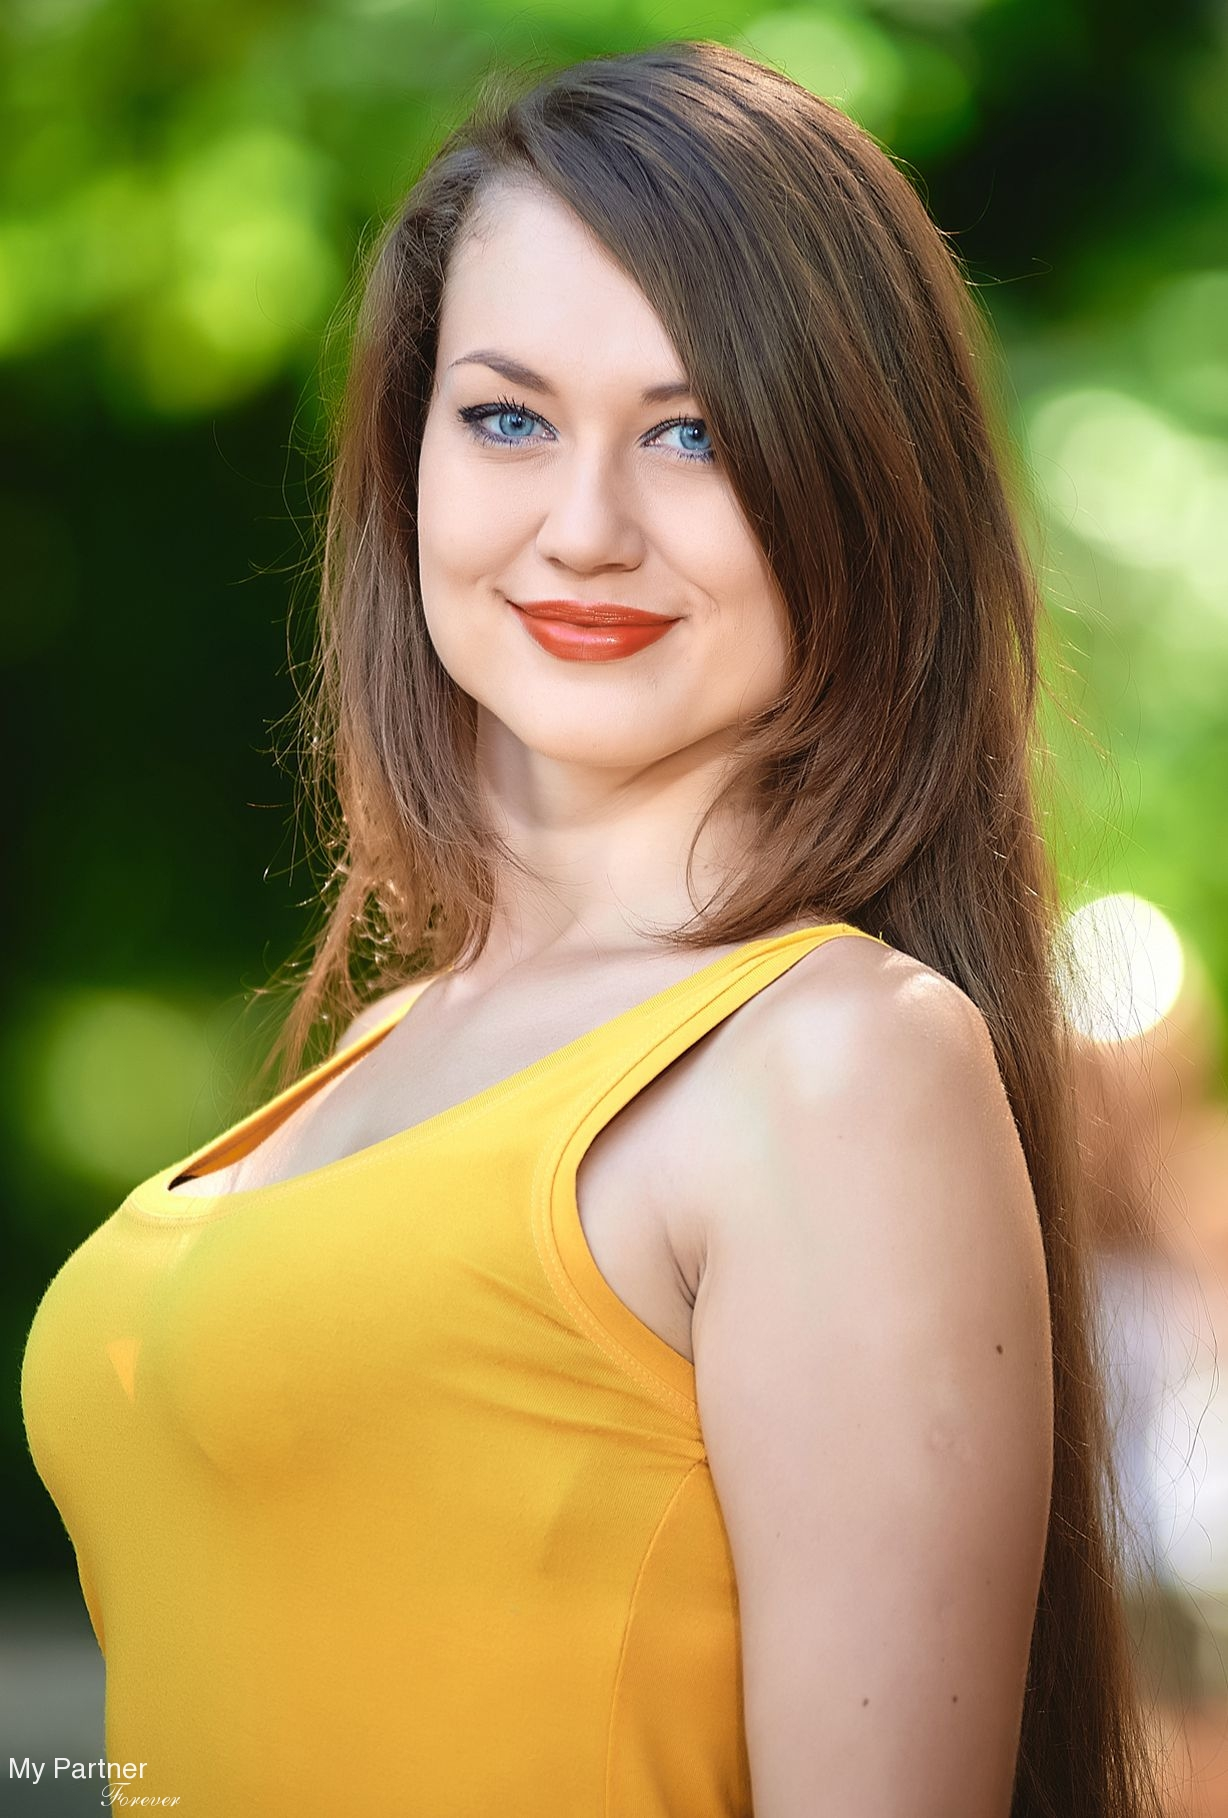 Russian Women real photo Gallery : single Ukraine girls